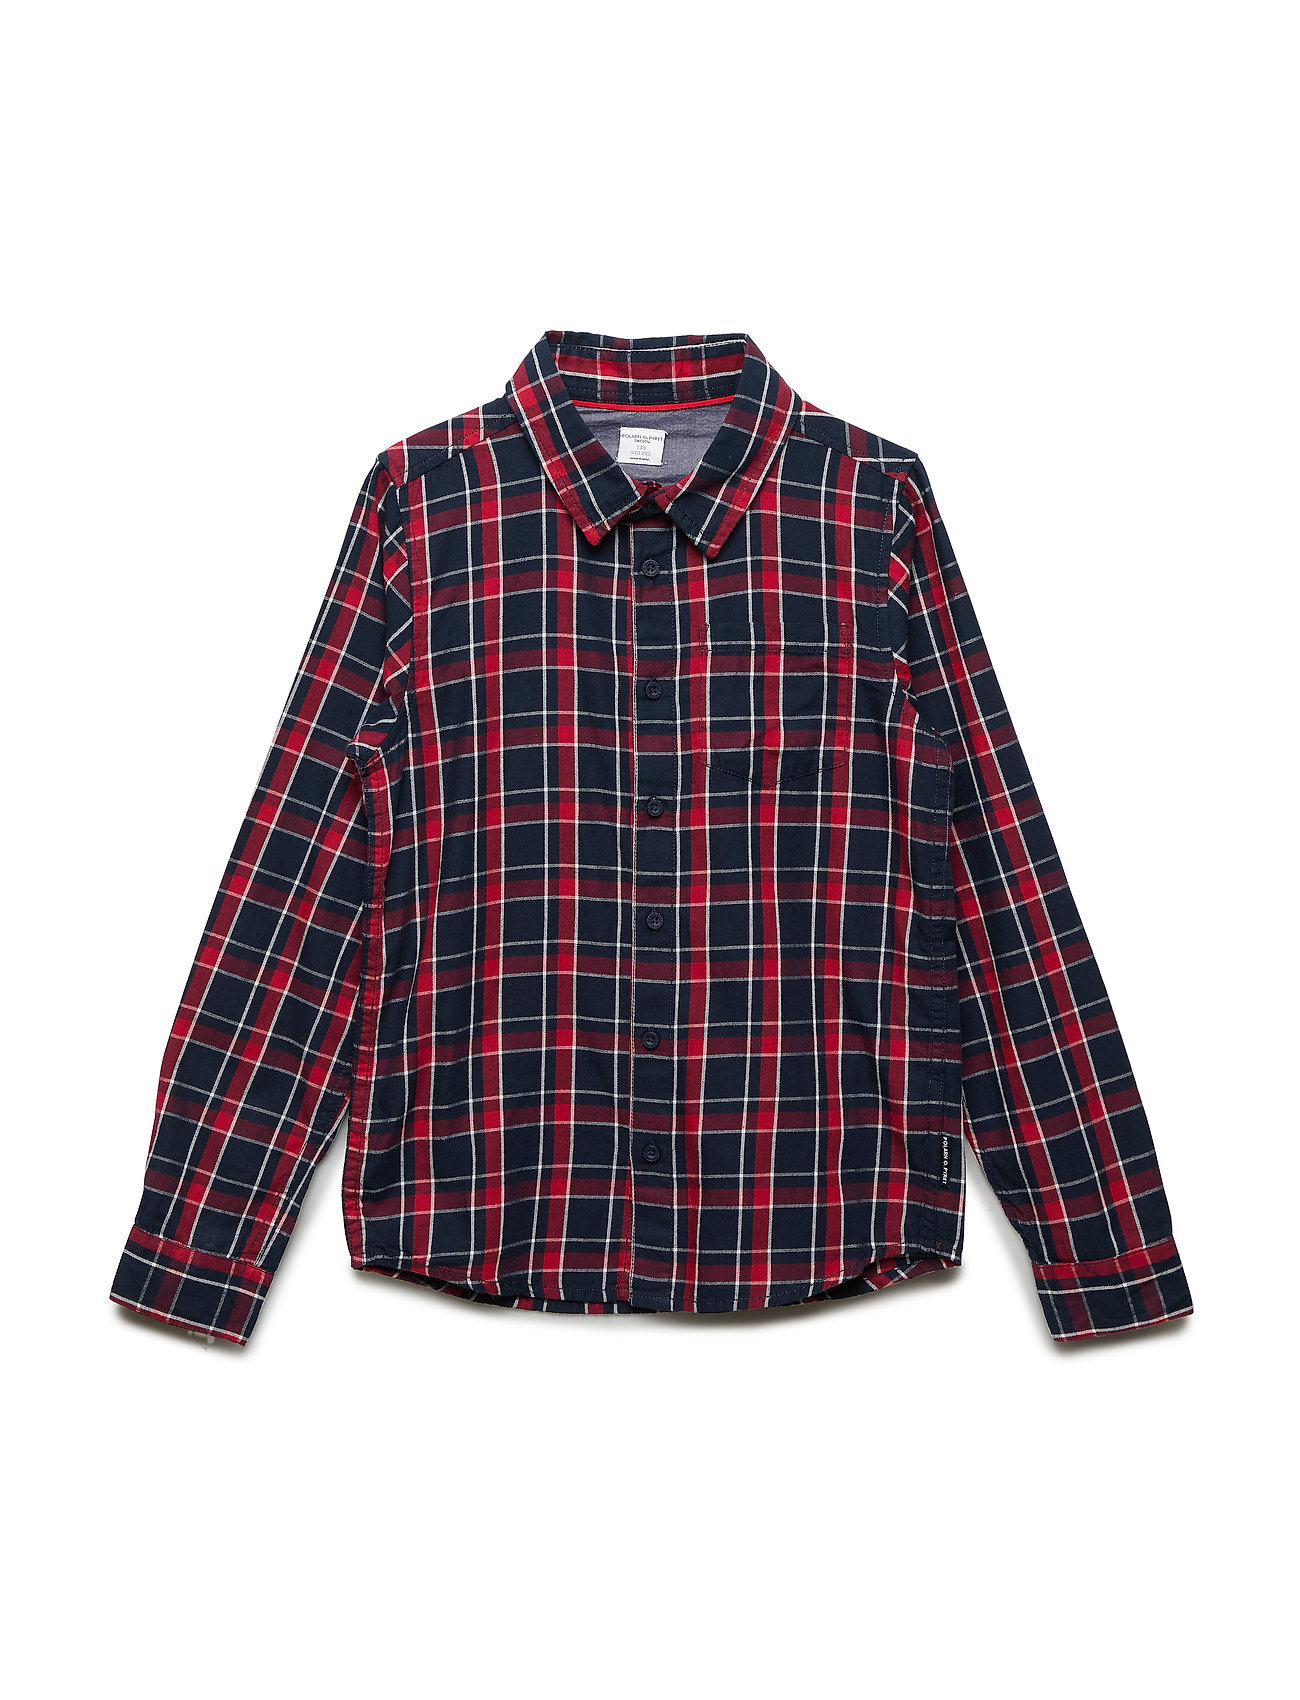 Polarn O. Pyret Shirt Long Sleeve Checked School